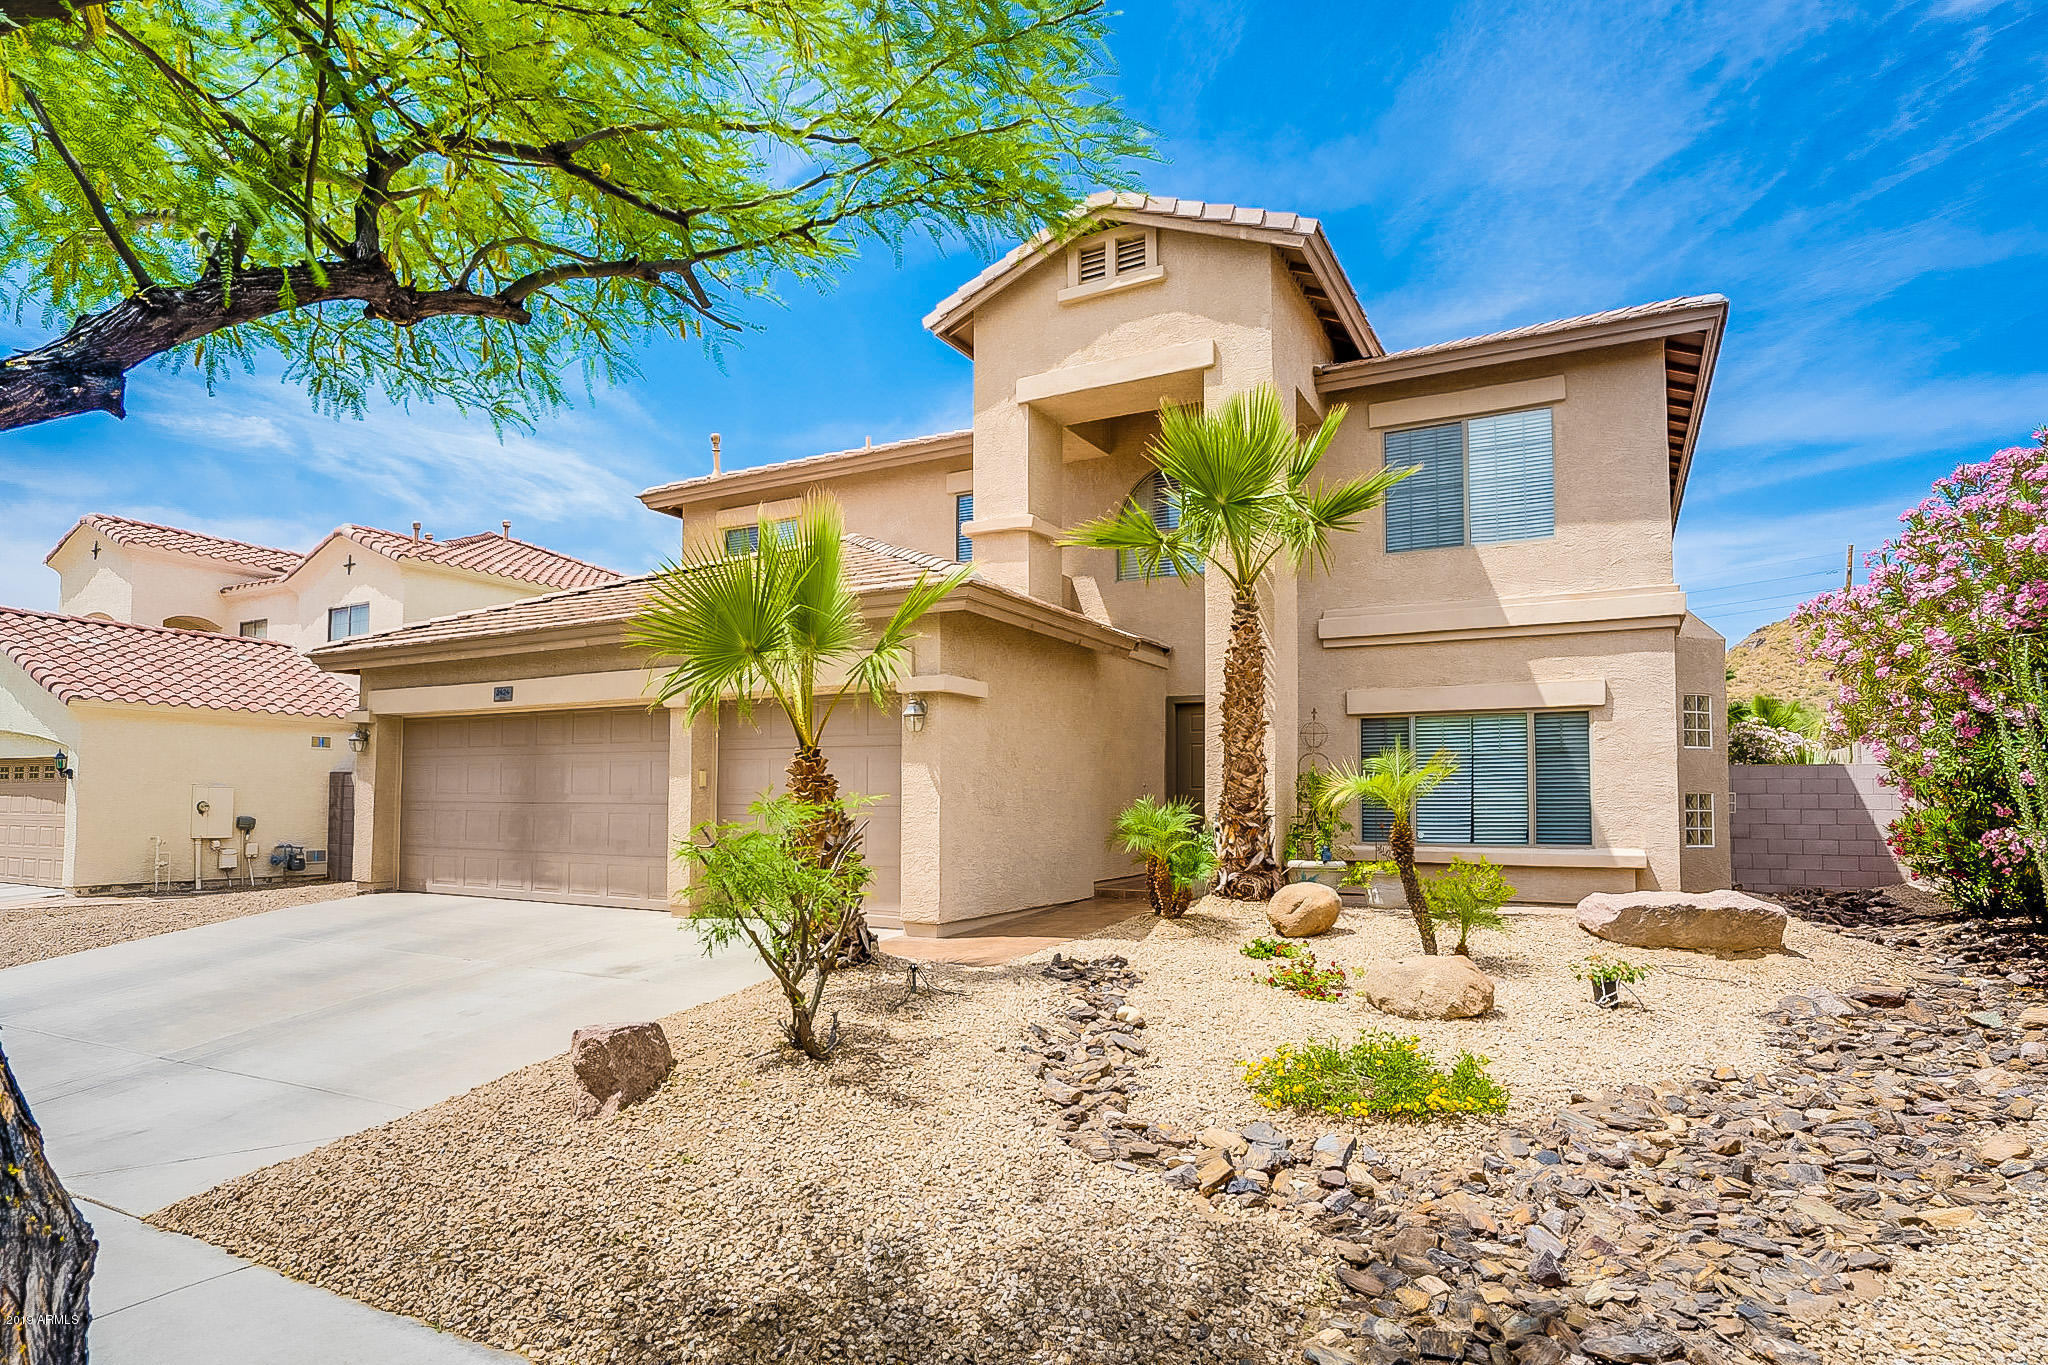 The Home Has Incredible Curb Appeal And A Three Car Garage! It Will Welcome  You